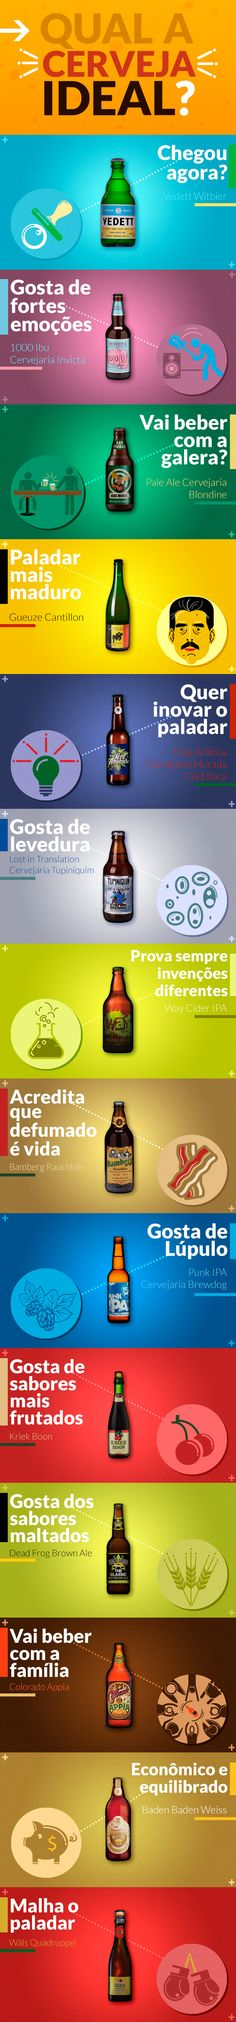 14 cervejas para descobrir como agradar o seu paladar Beer Images, Cheers, Beer Brands, Beer Tasting, Beer Recipes, Getting Drunk, Wine And Beer, Beer Lovers, Bottle Design